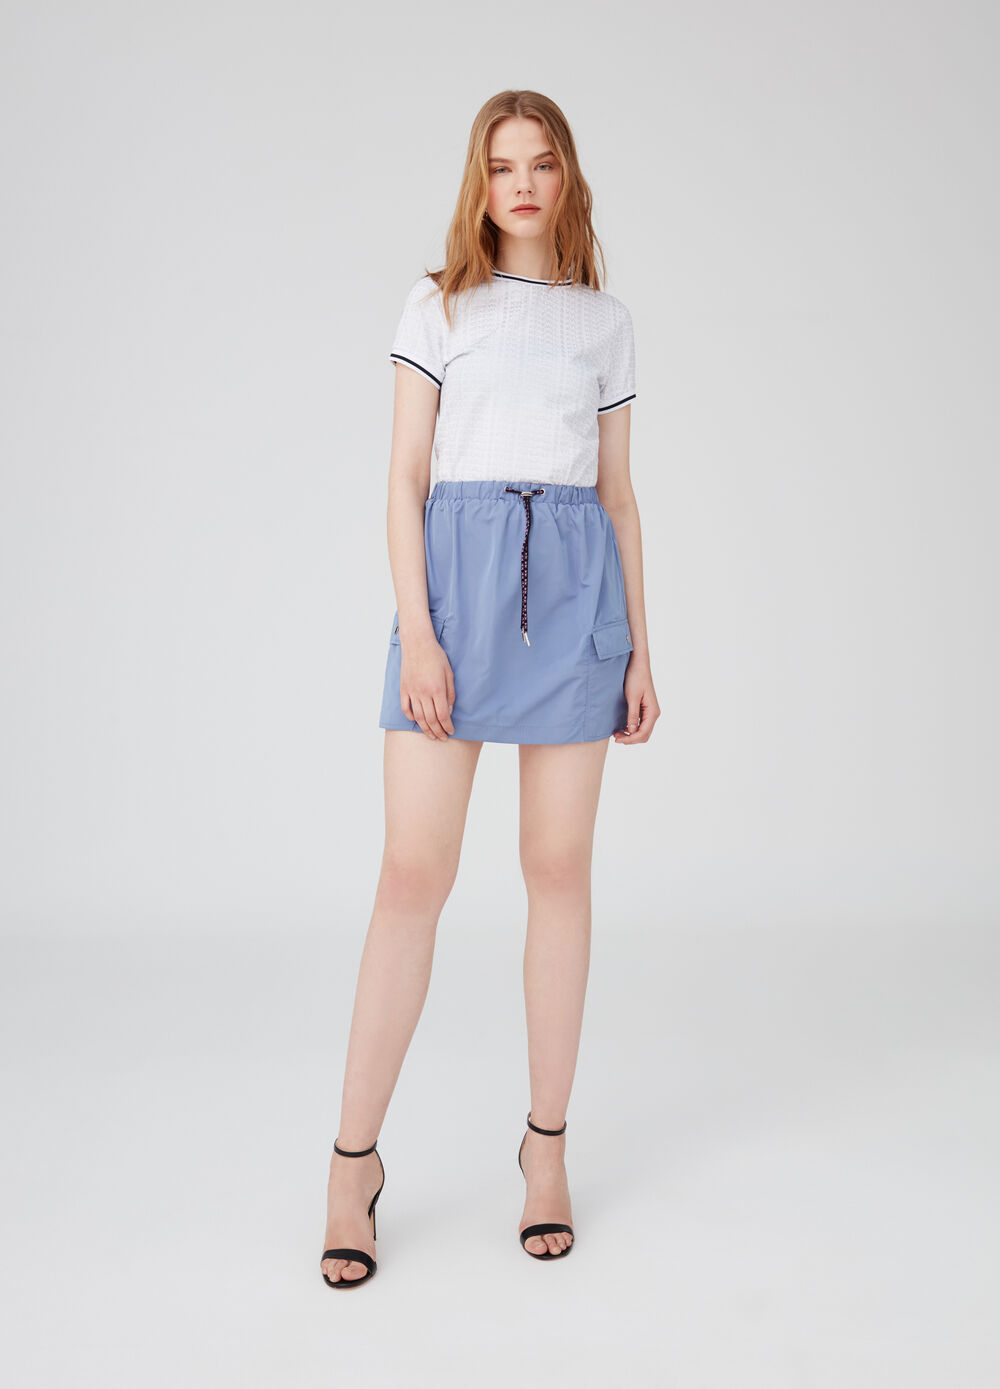 K+K for OVS short skirt with two pockets